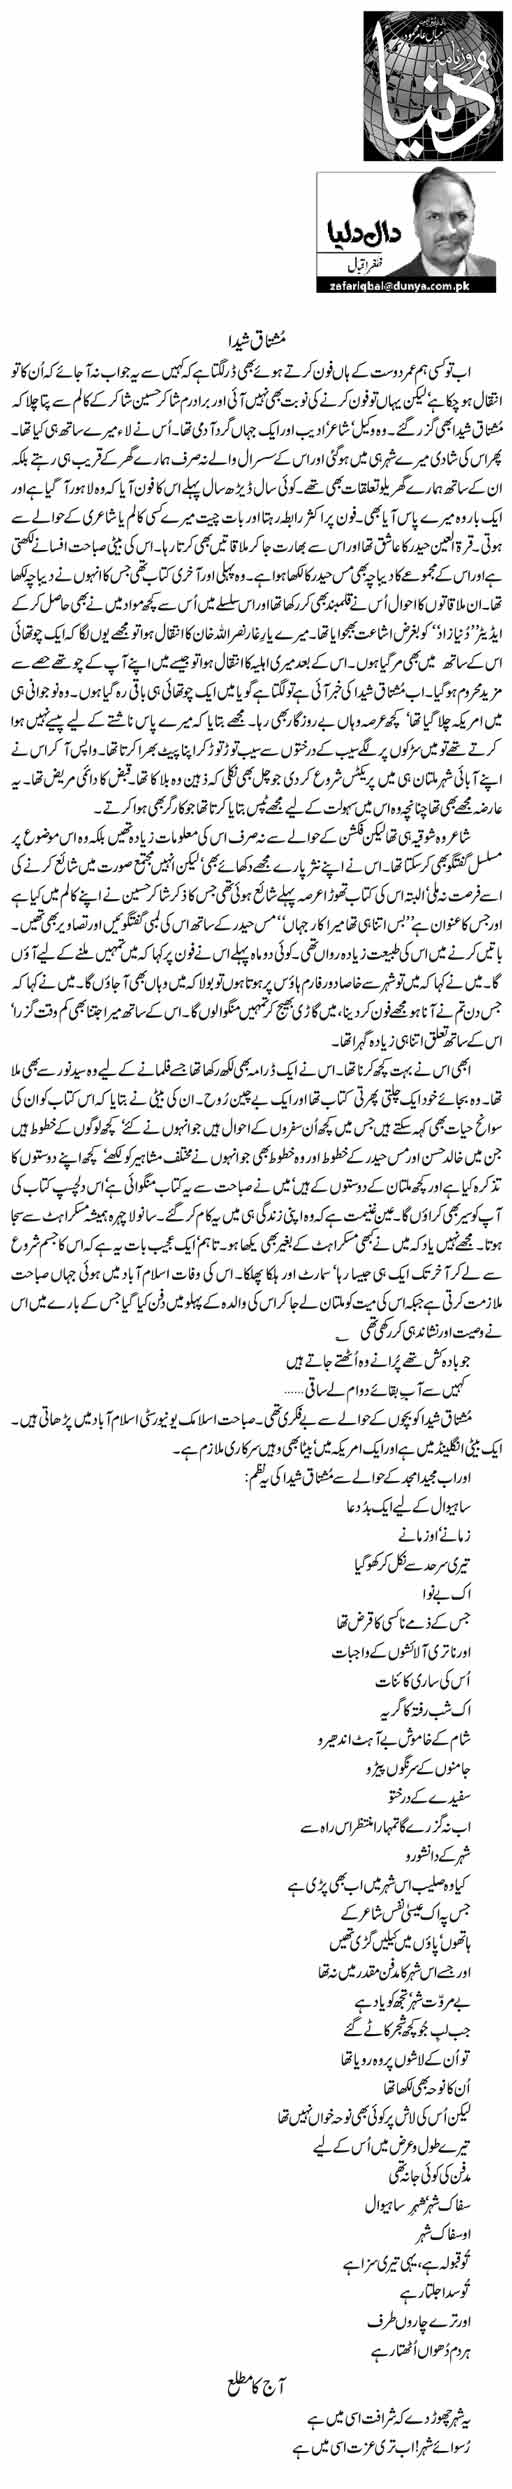 Mushtaq Sheeda | Zafar Iqbal | Daily Urdu Columns